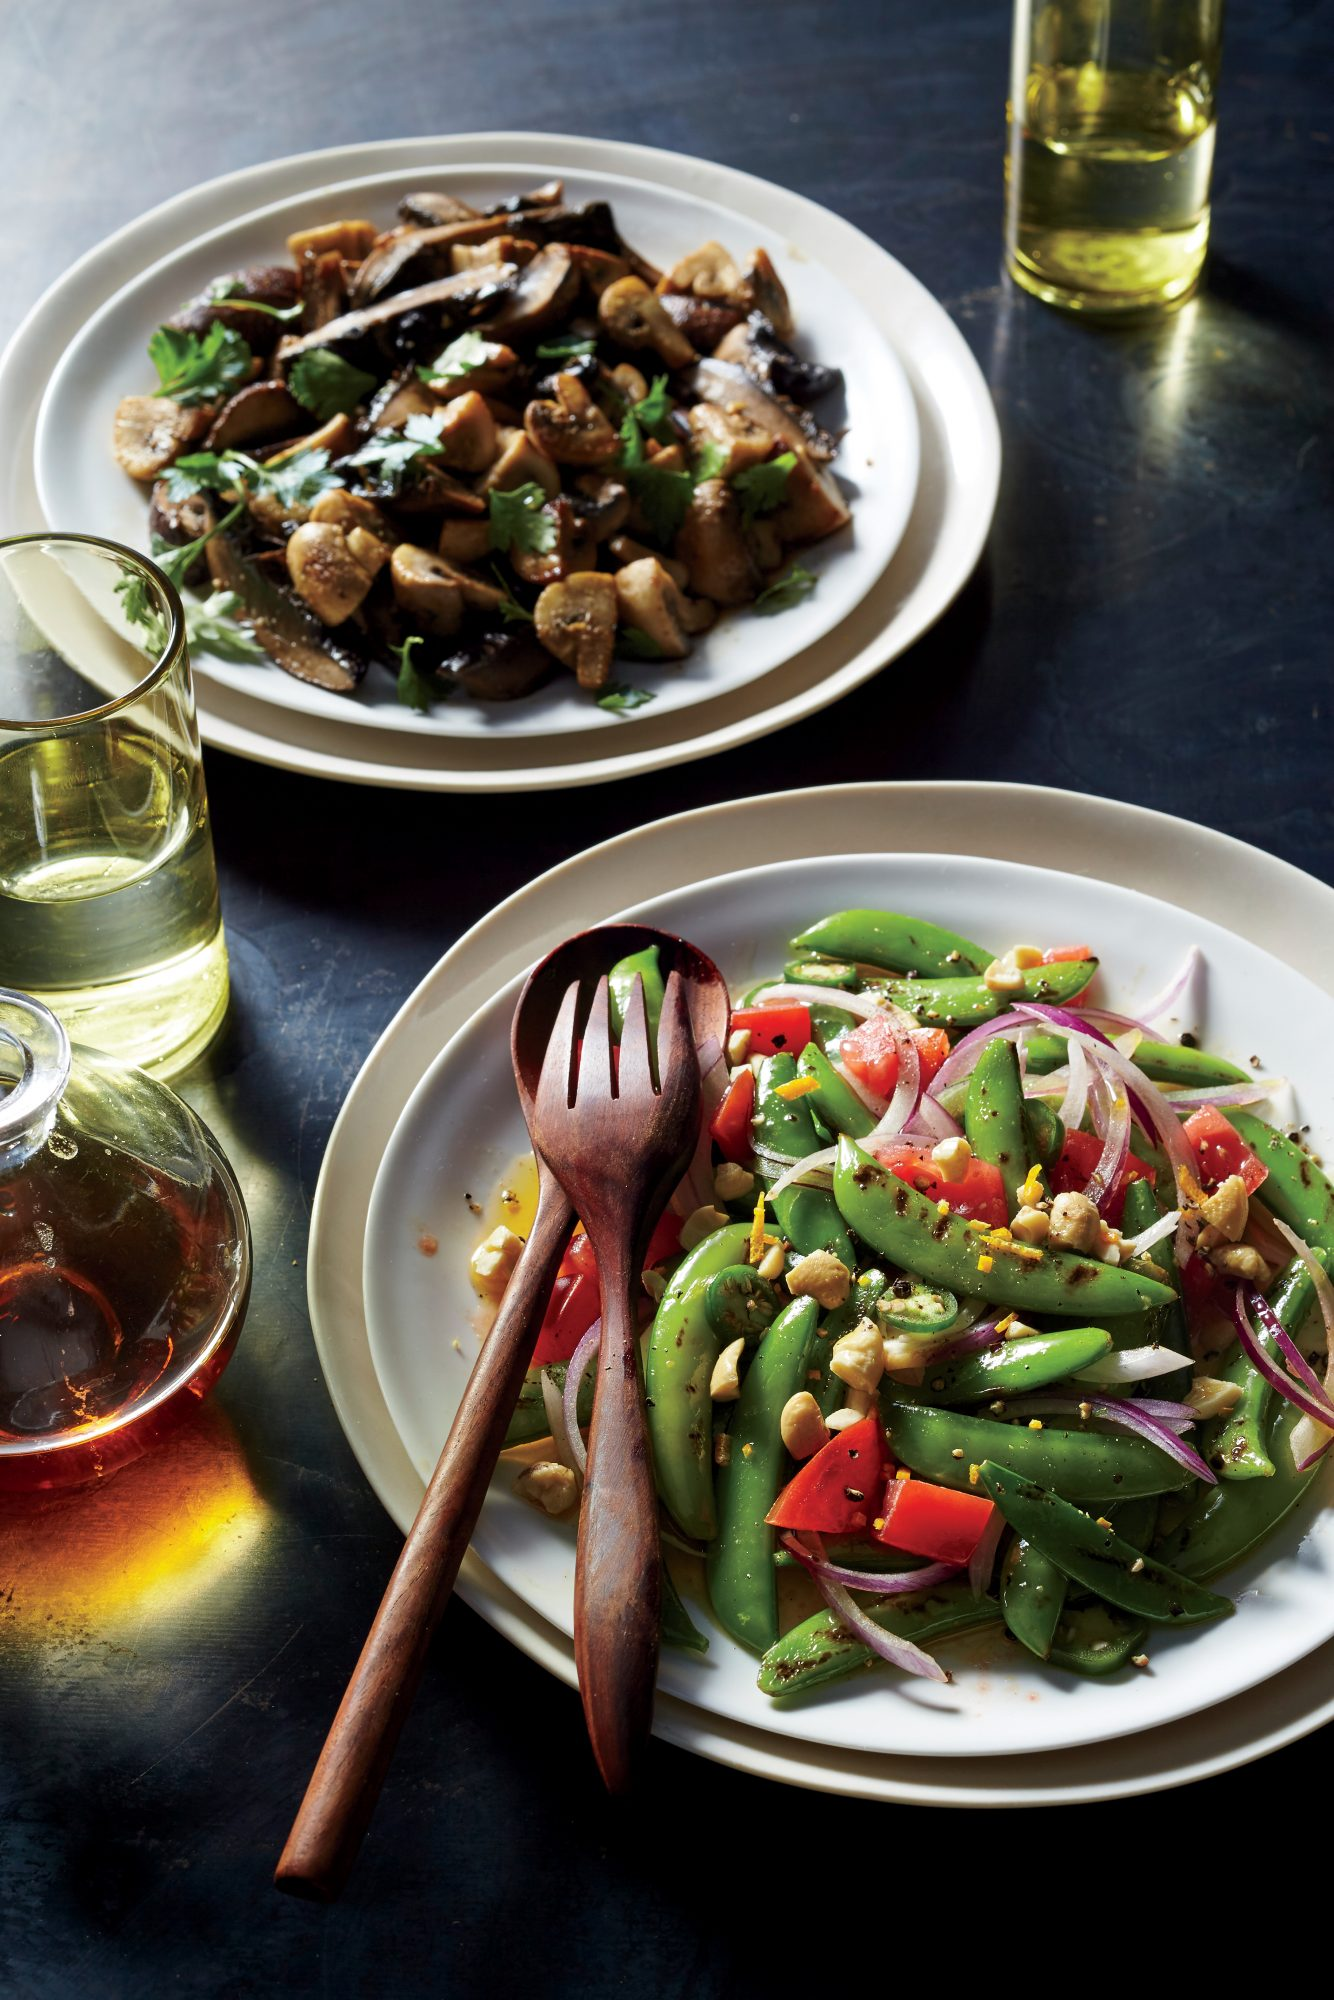 Blistered Snap Peas with Fish Sauce Vinaigrette, Roasted Cashews, and Basil